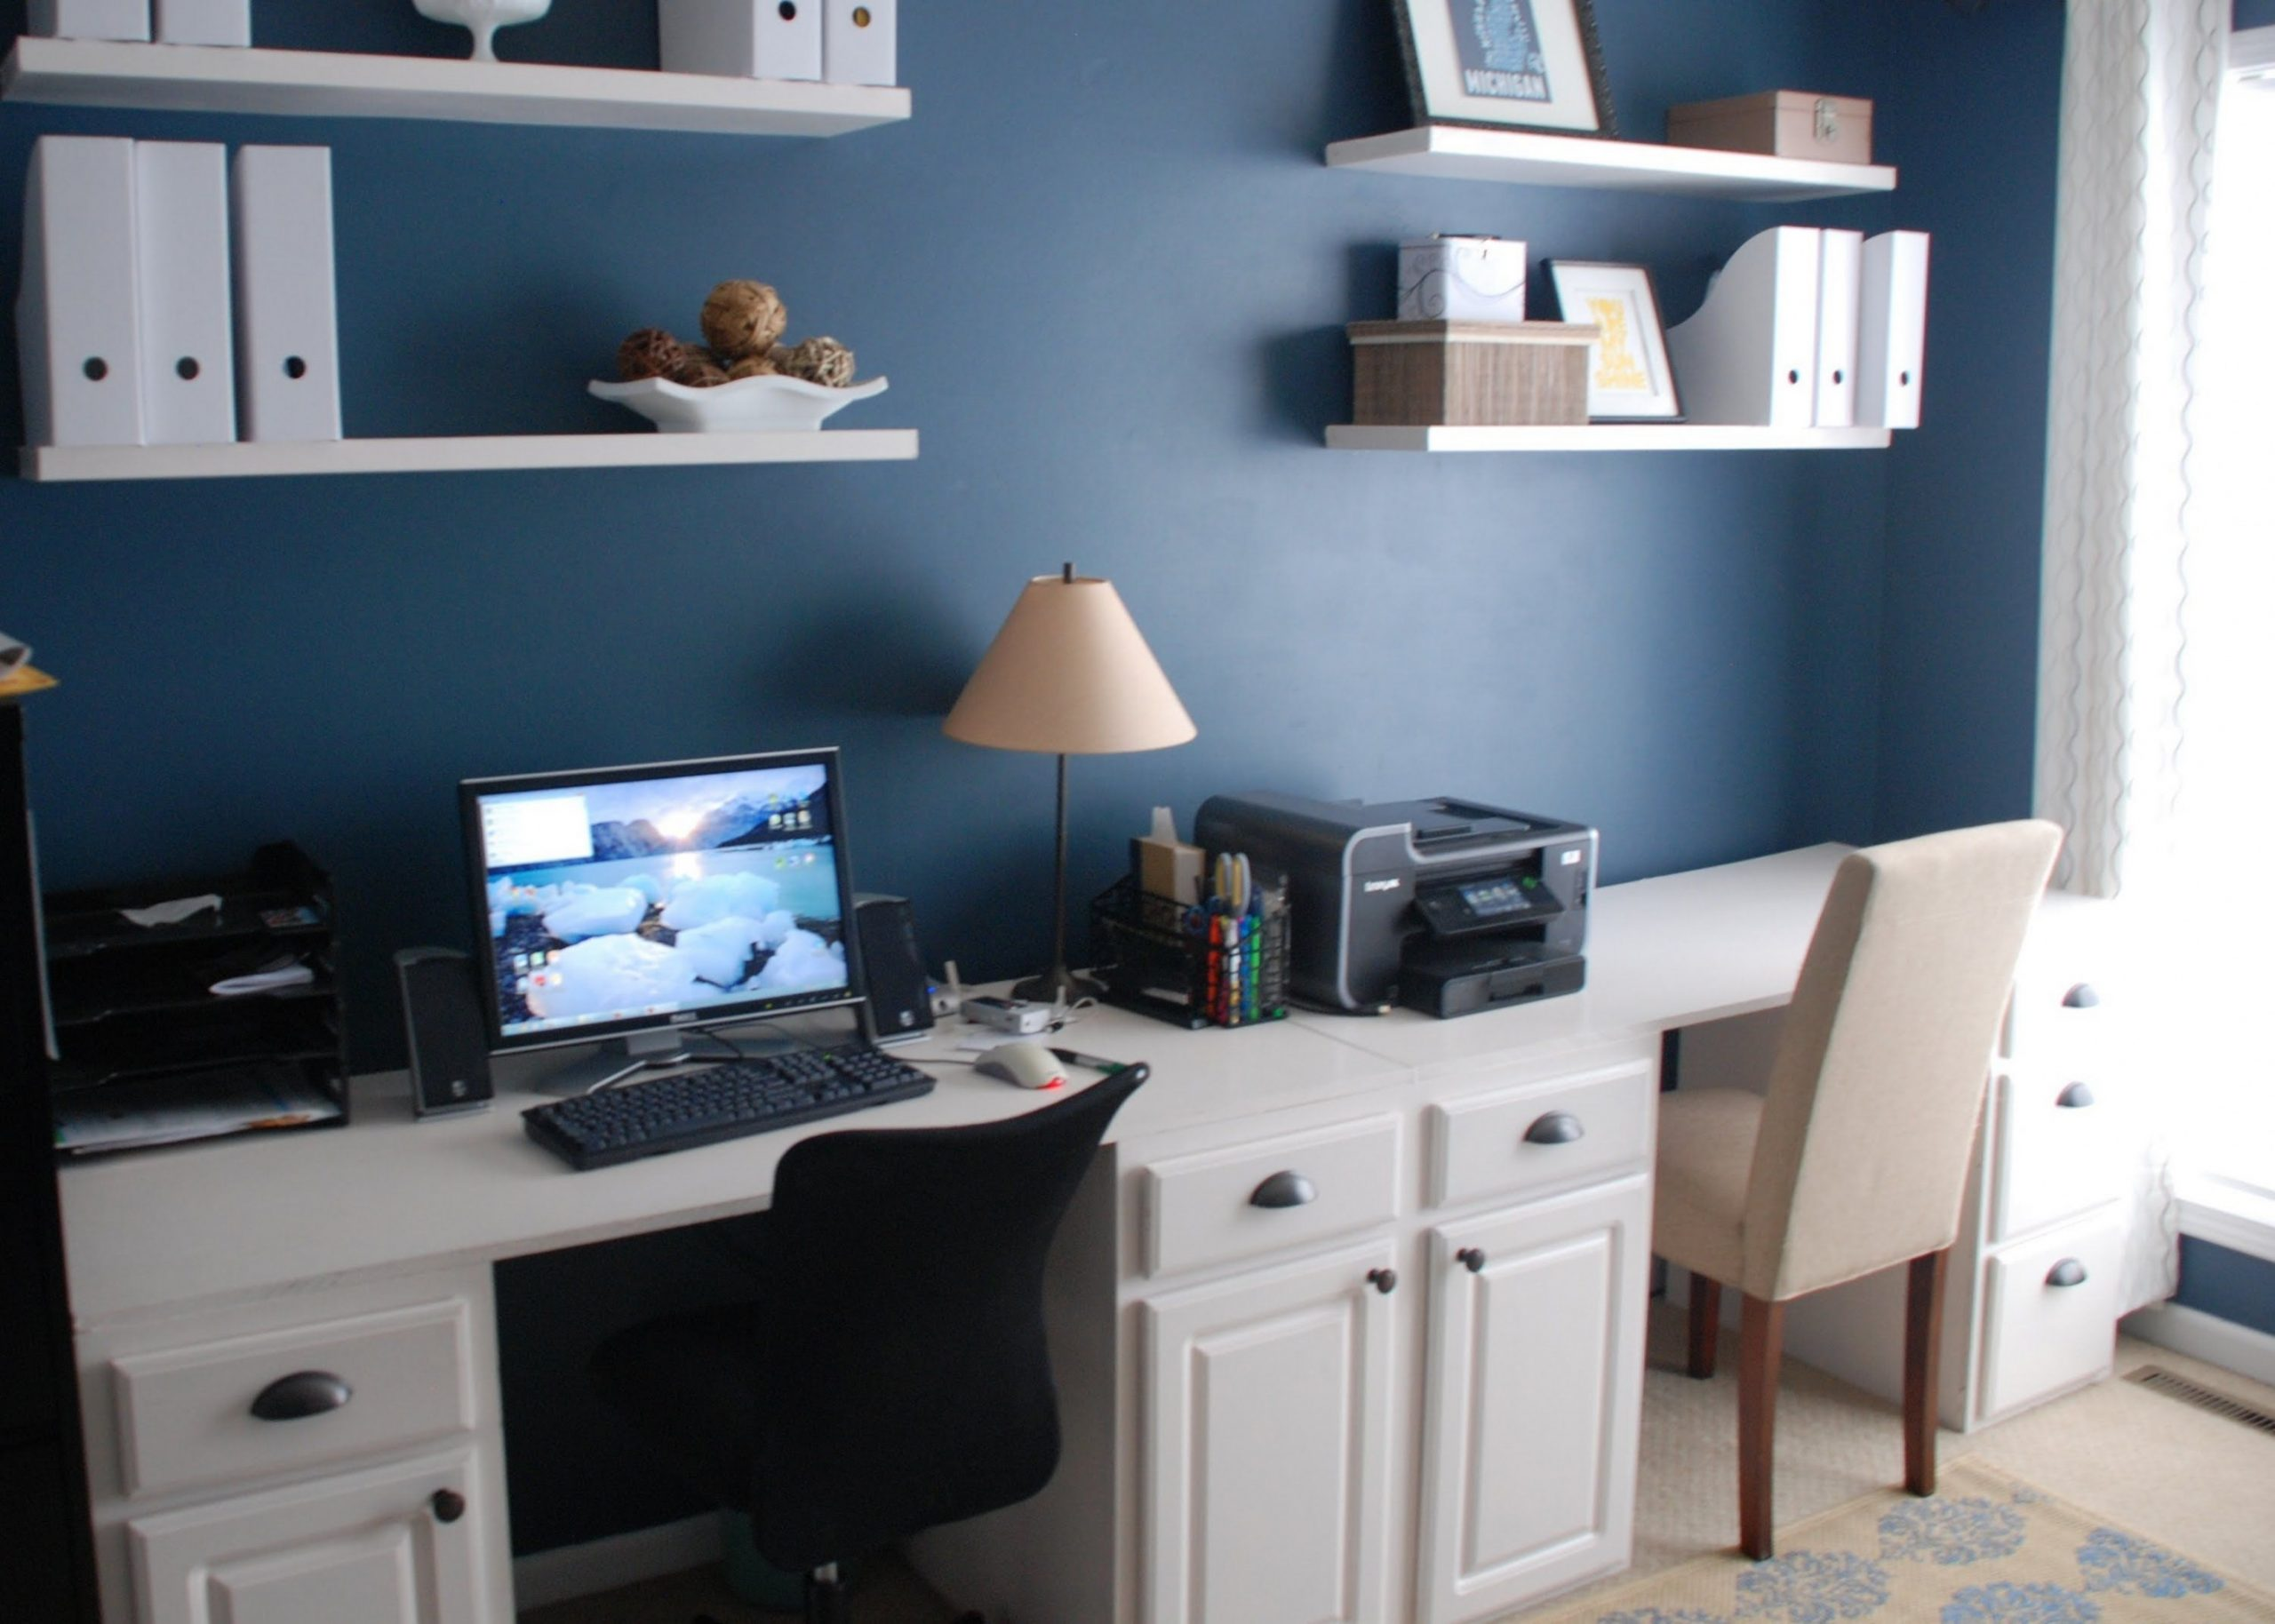 How to Make a Desk out of Kitchen Cabinets  Modern home office  - Home Office Ideas With Kitchen Cabinets